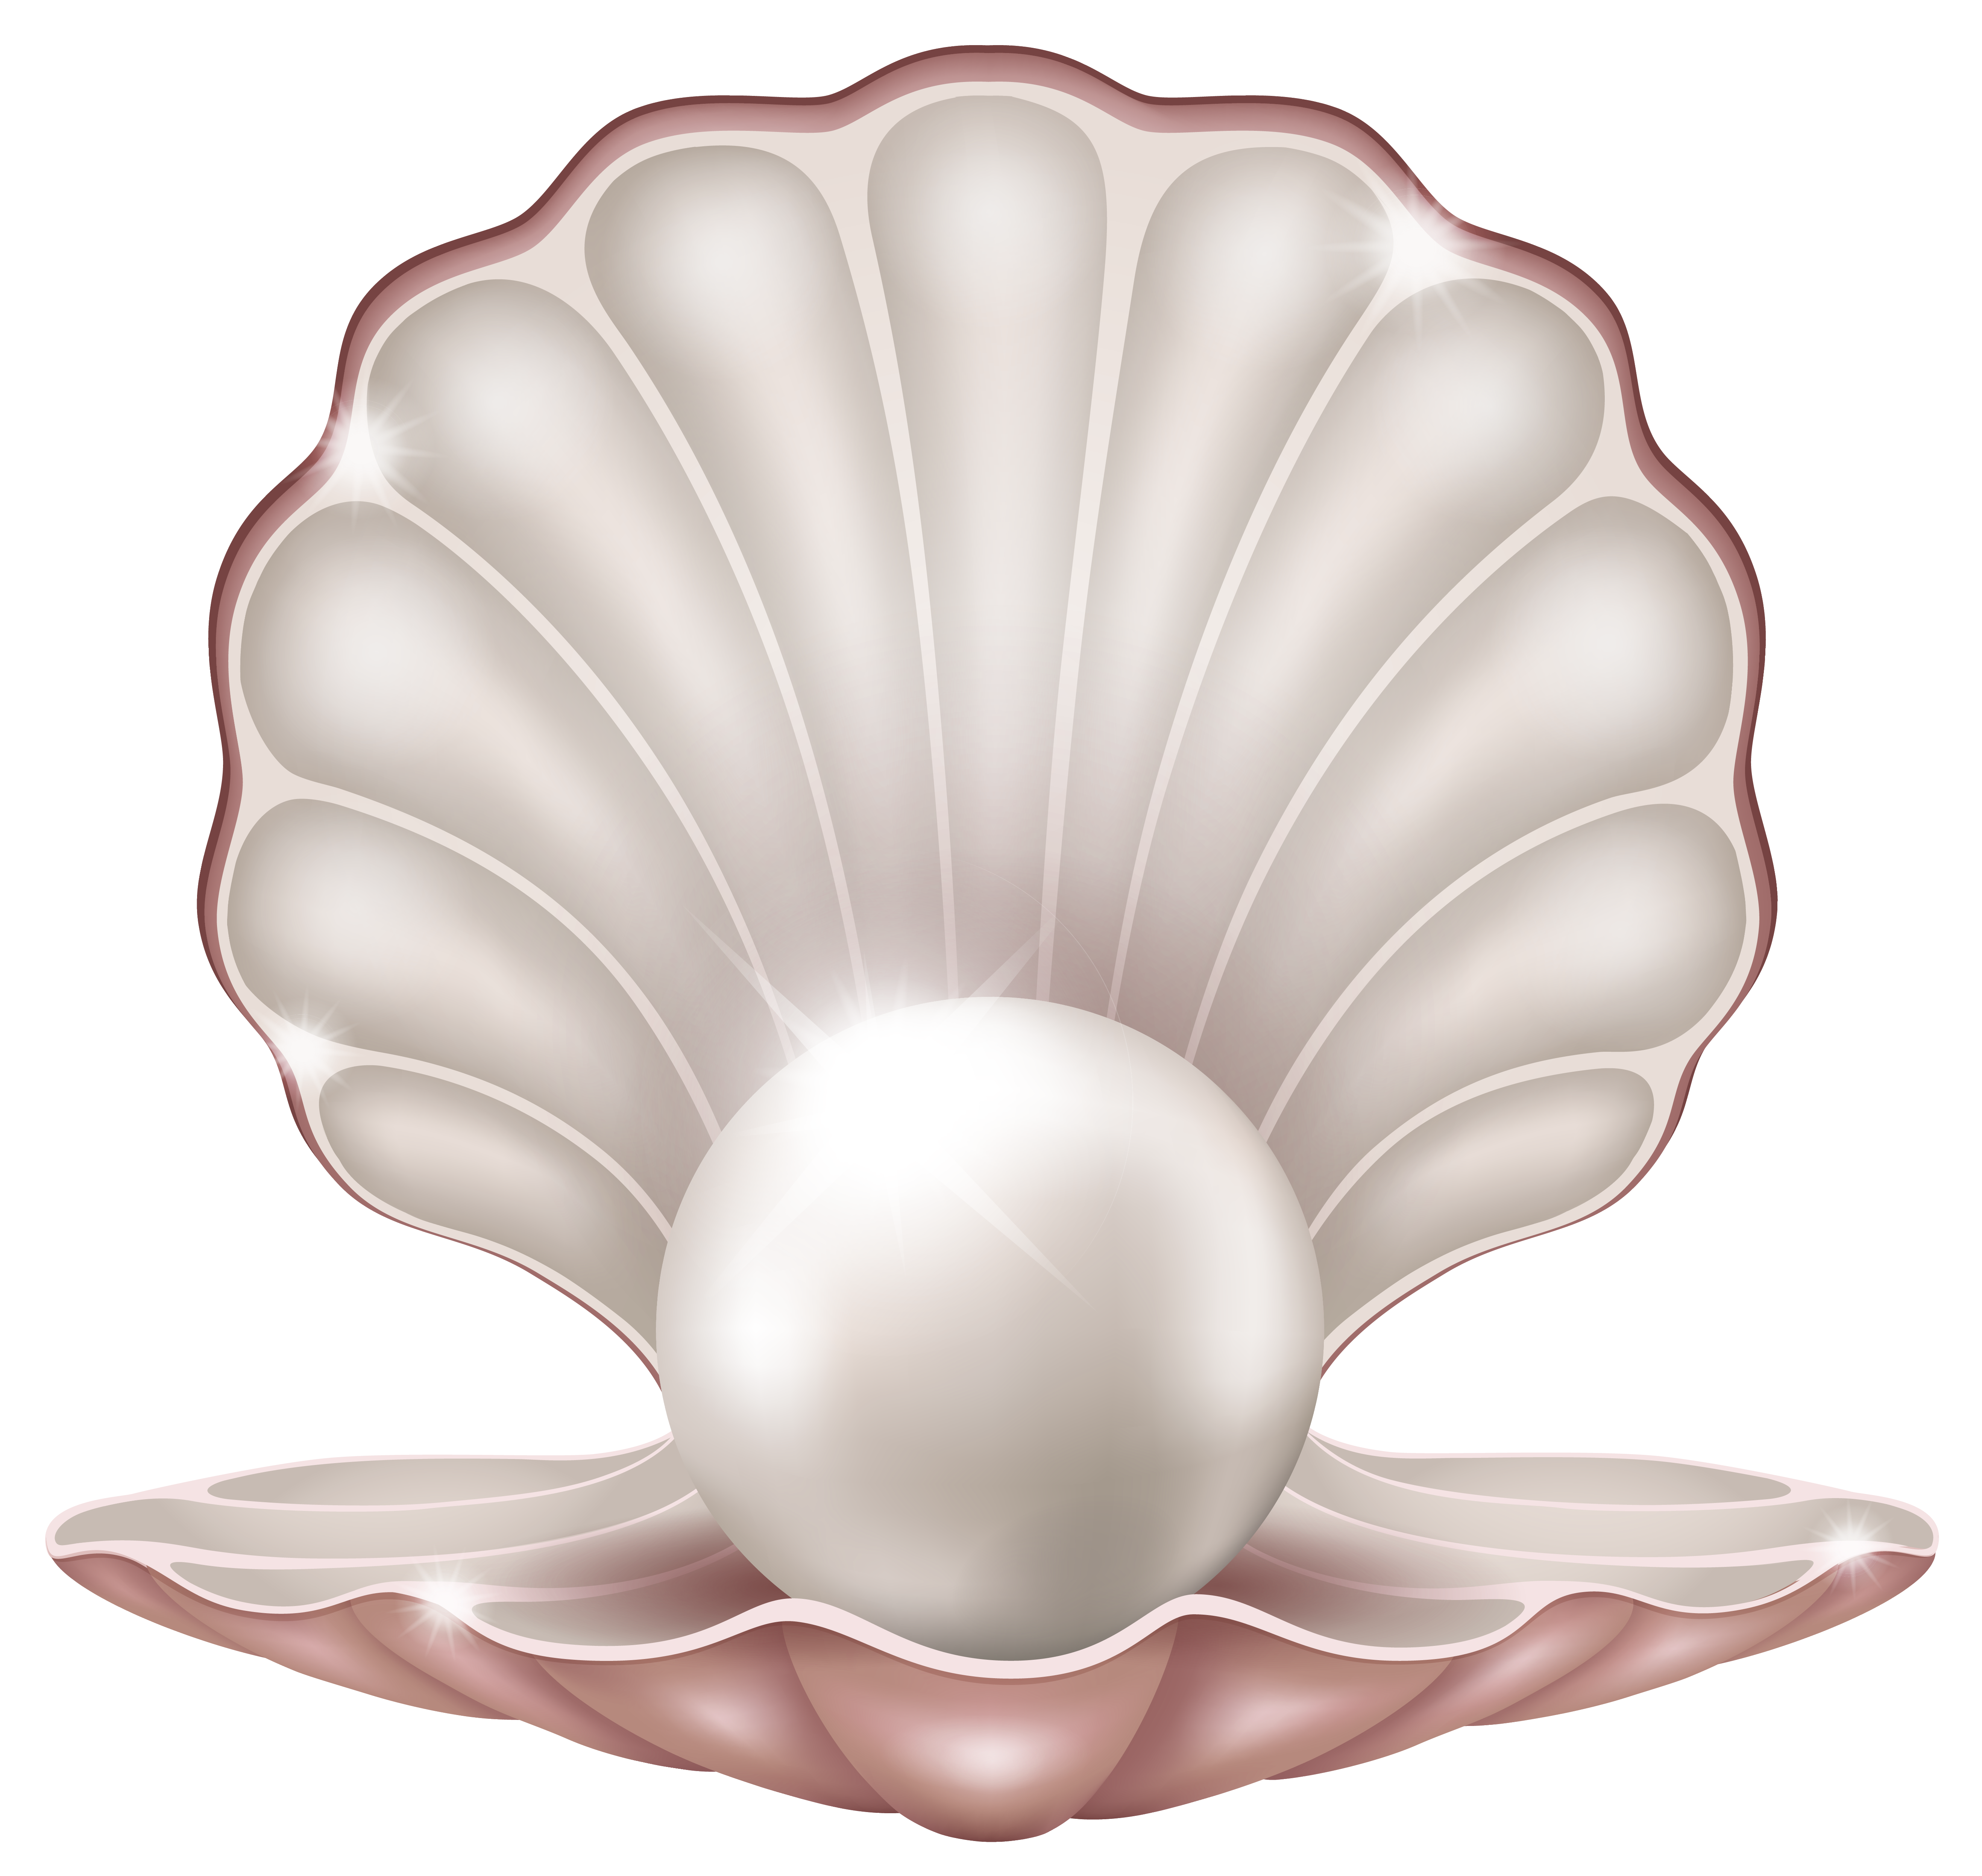 Pearls clipart sheel. Beautiful clam with pearl